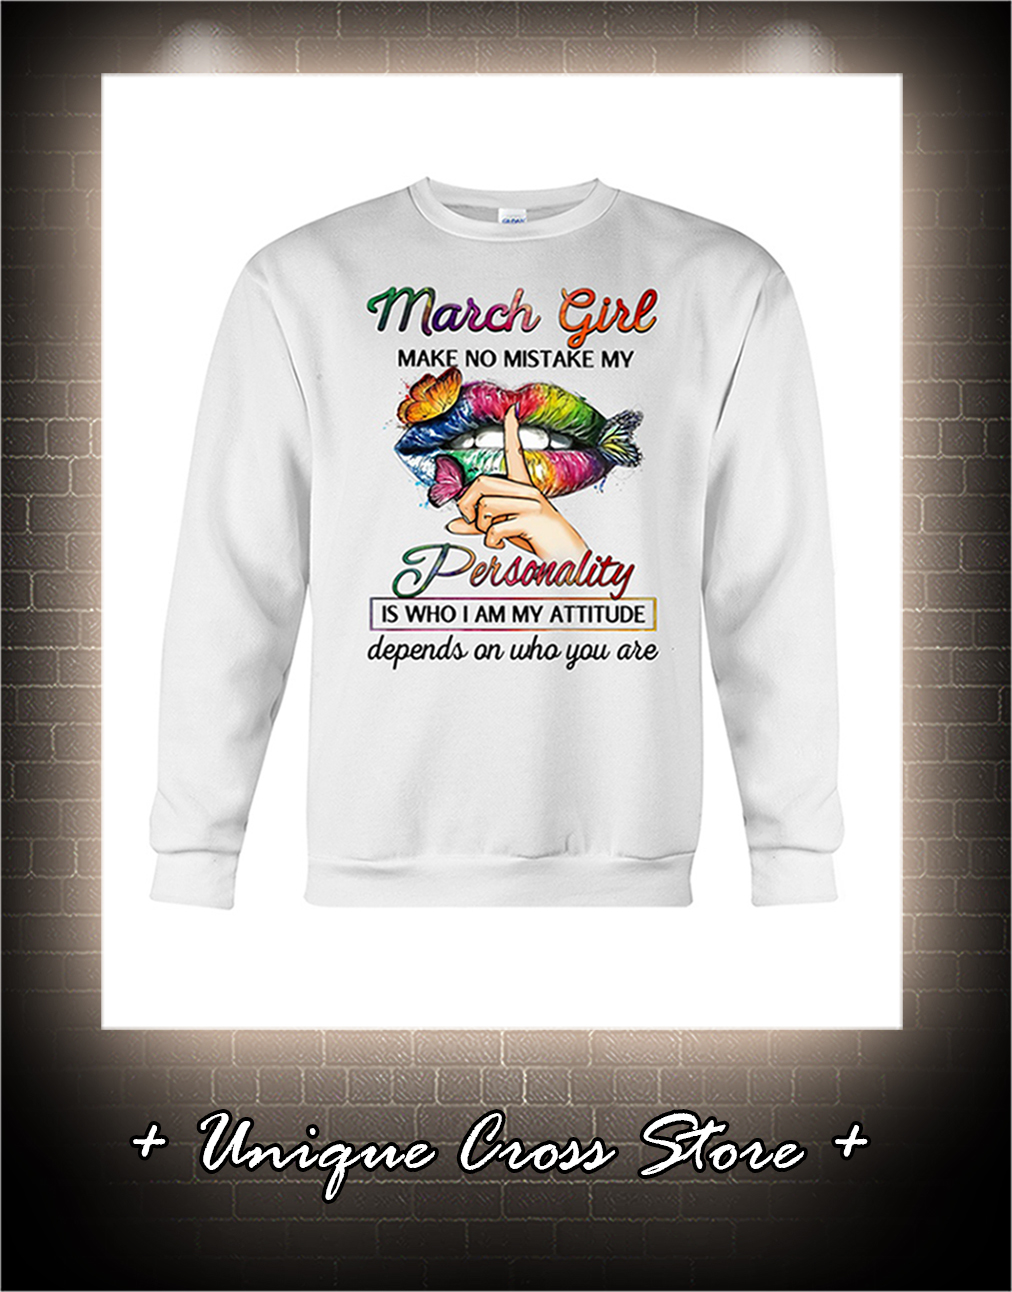 Shut Up Lips Butterfly March Girl Make No Mistake My Personality Is Who I Am My Attitude sweatshirt